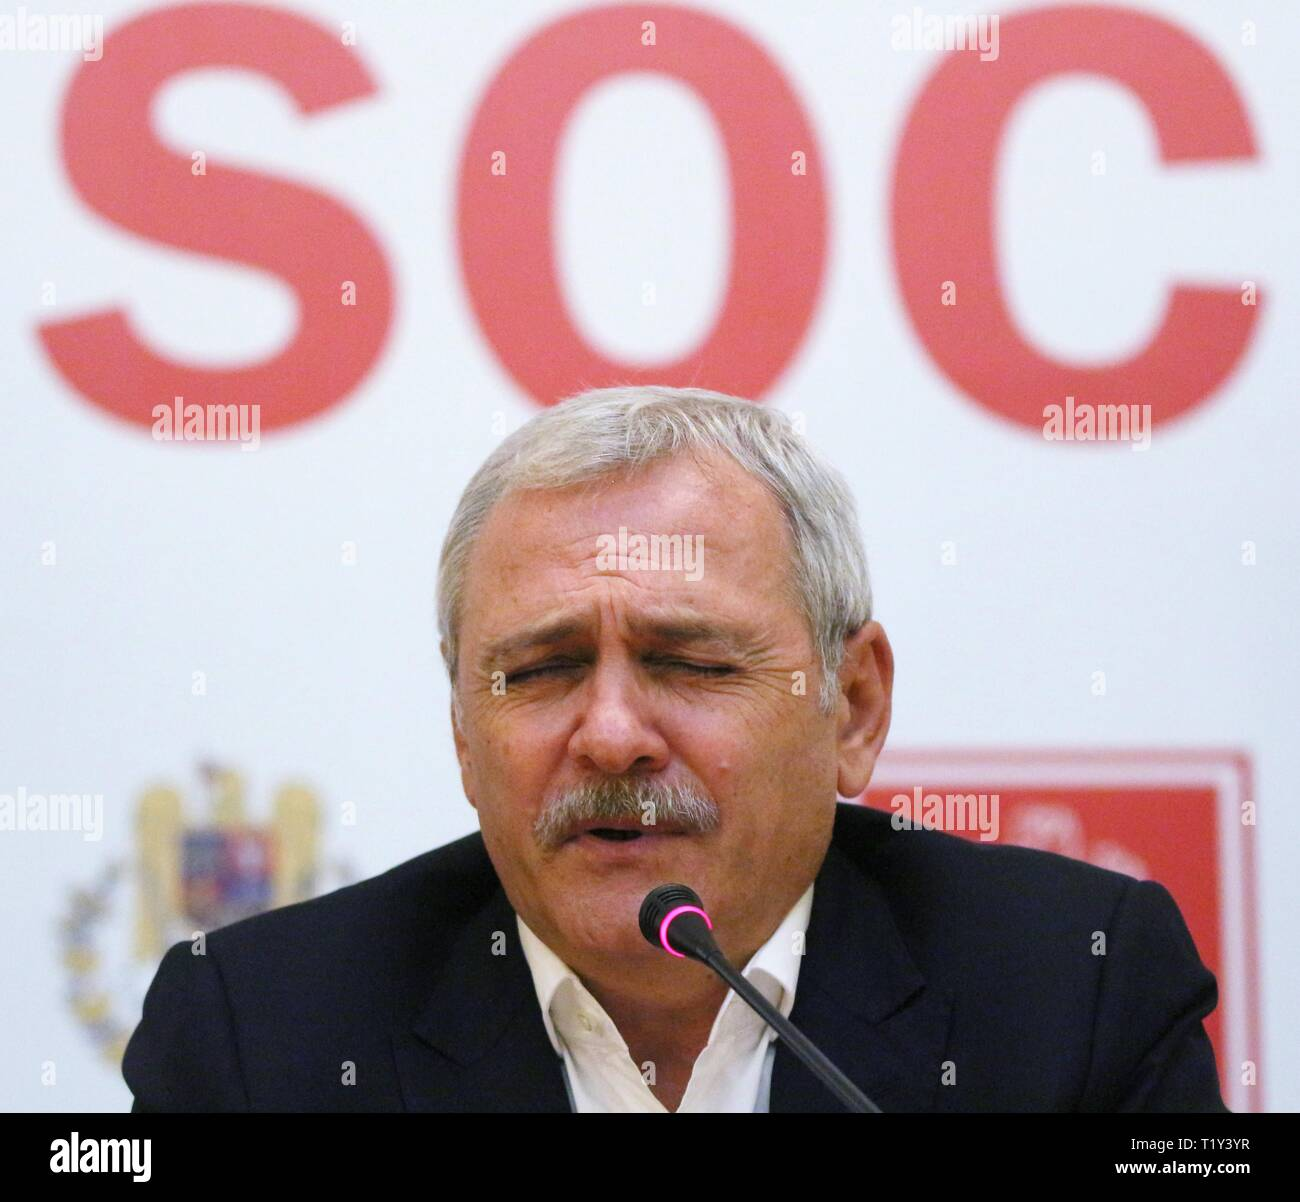 Bucharest, Romania - March 28, 2019: Liviu Dragnea, alongside Aurelian Pavelescu and Danut Pop (not in picture), just signed a protocon where PNTCD and PER decided to support PSD in the EP elections. Credit: lcv/Alamy Live News - Stock Image